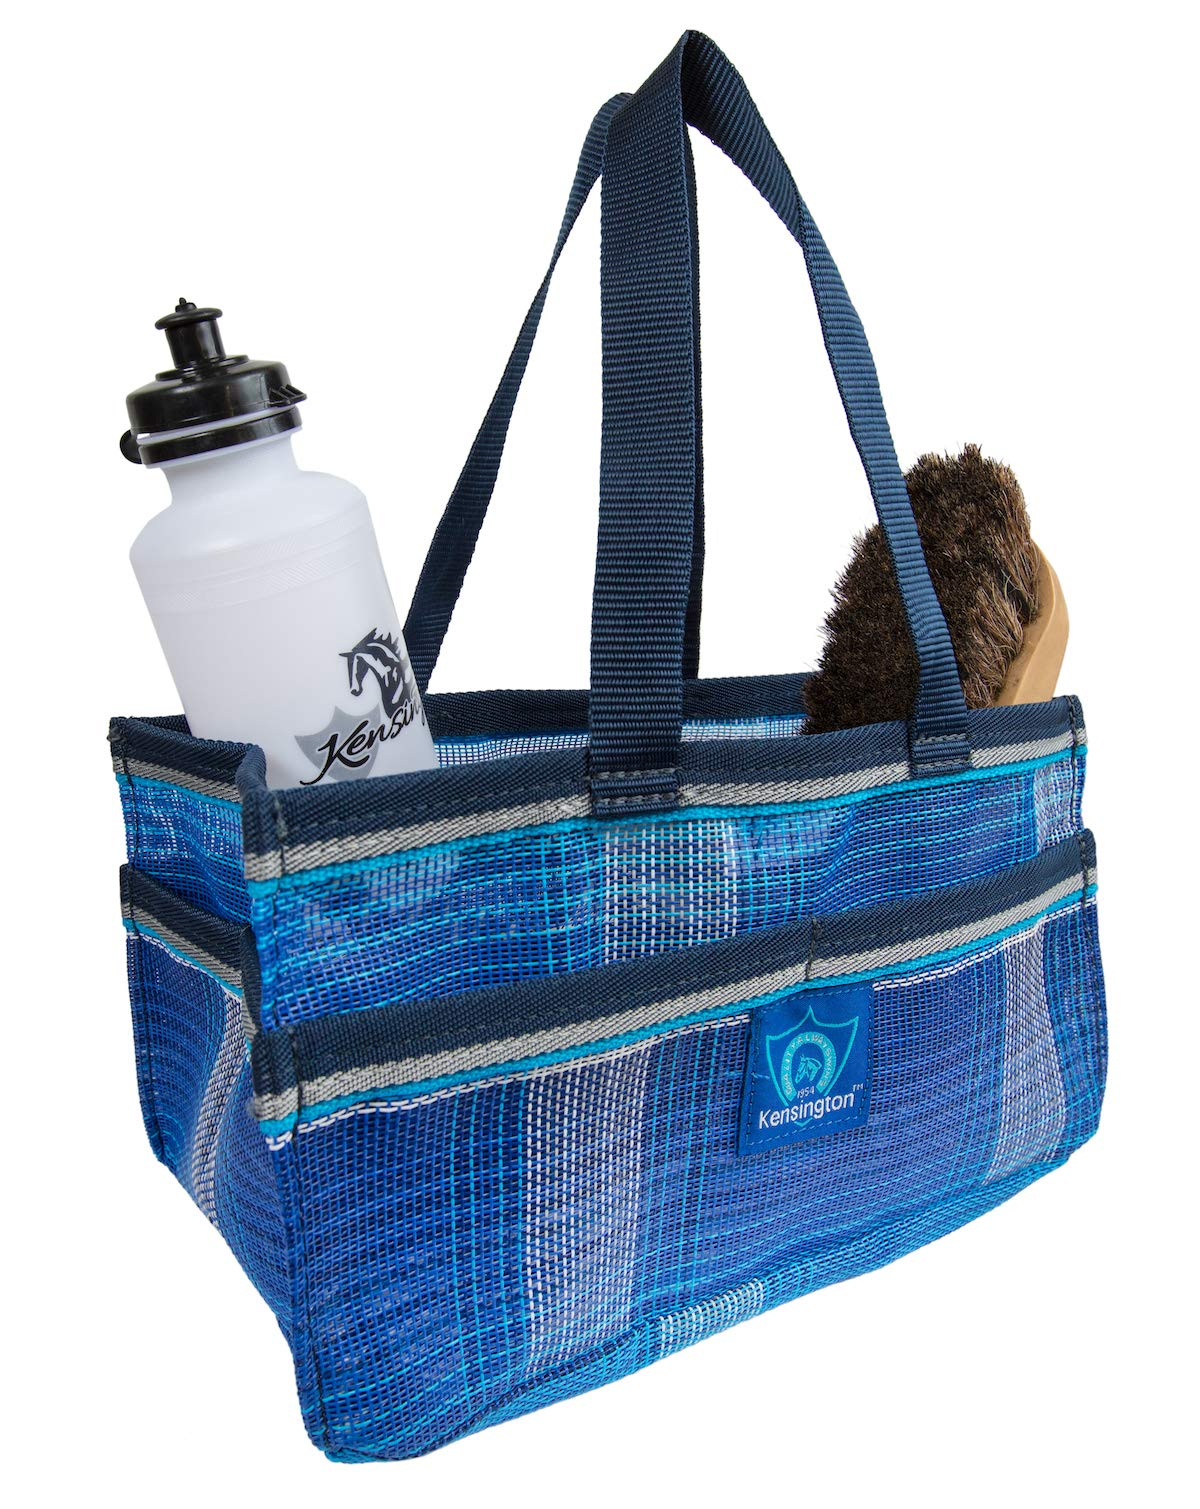 Kensington Horse Grooming Tote Bag - Handy Upright Stow Away in Vibrant Plaid Designs - Durable with Lots of Storage Compartments - 12'' L x 7'' W x 7'' D